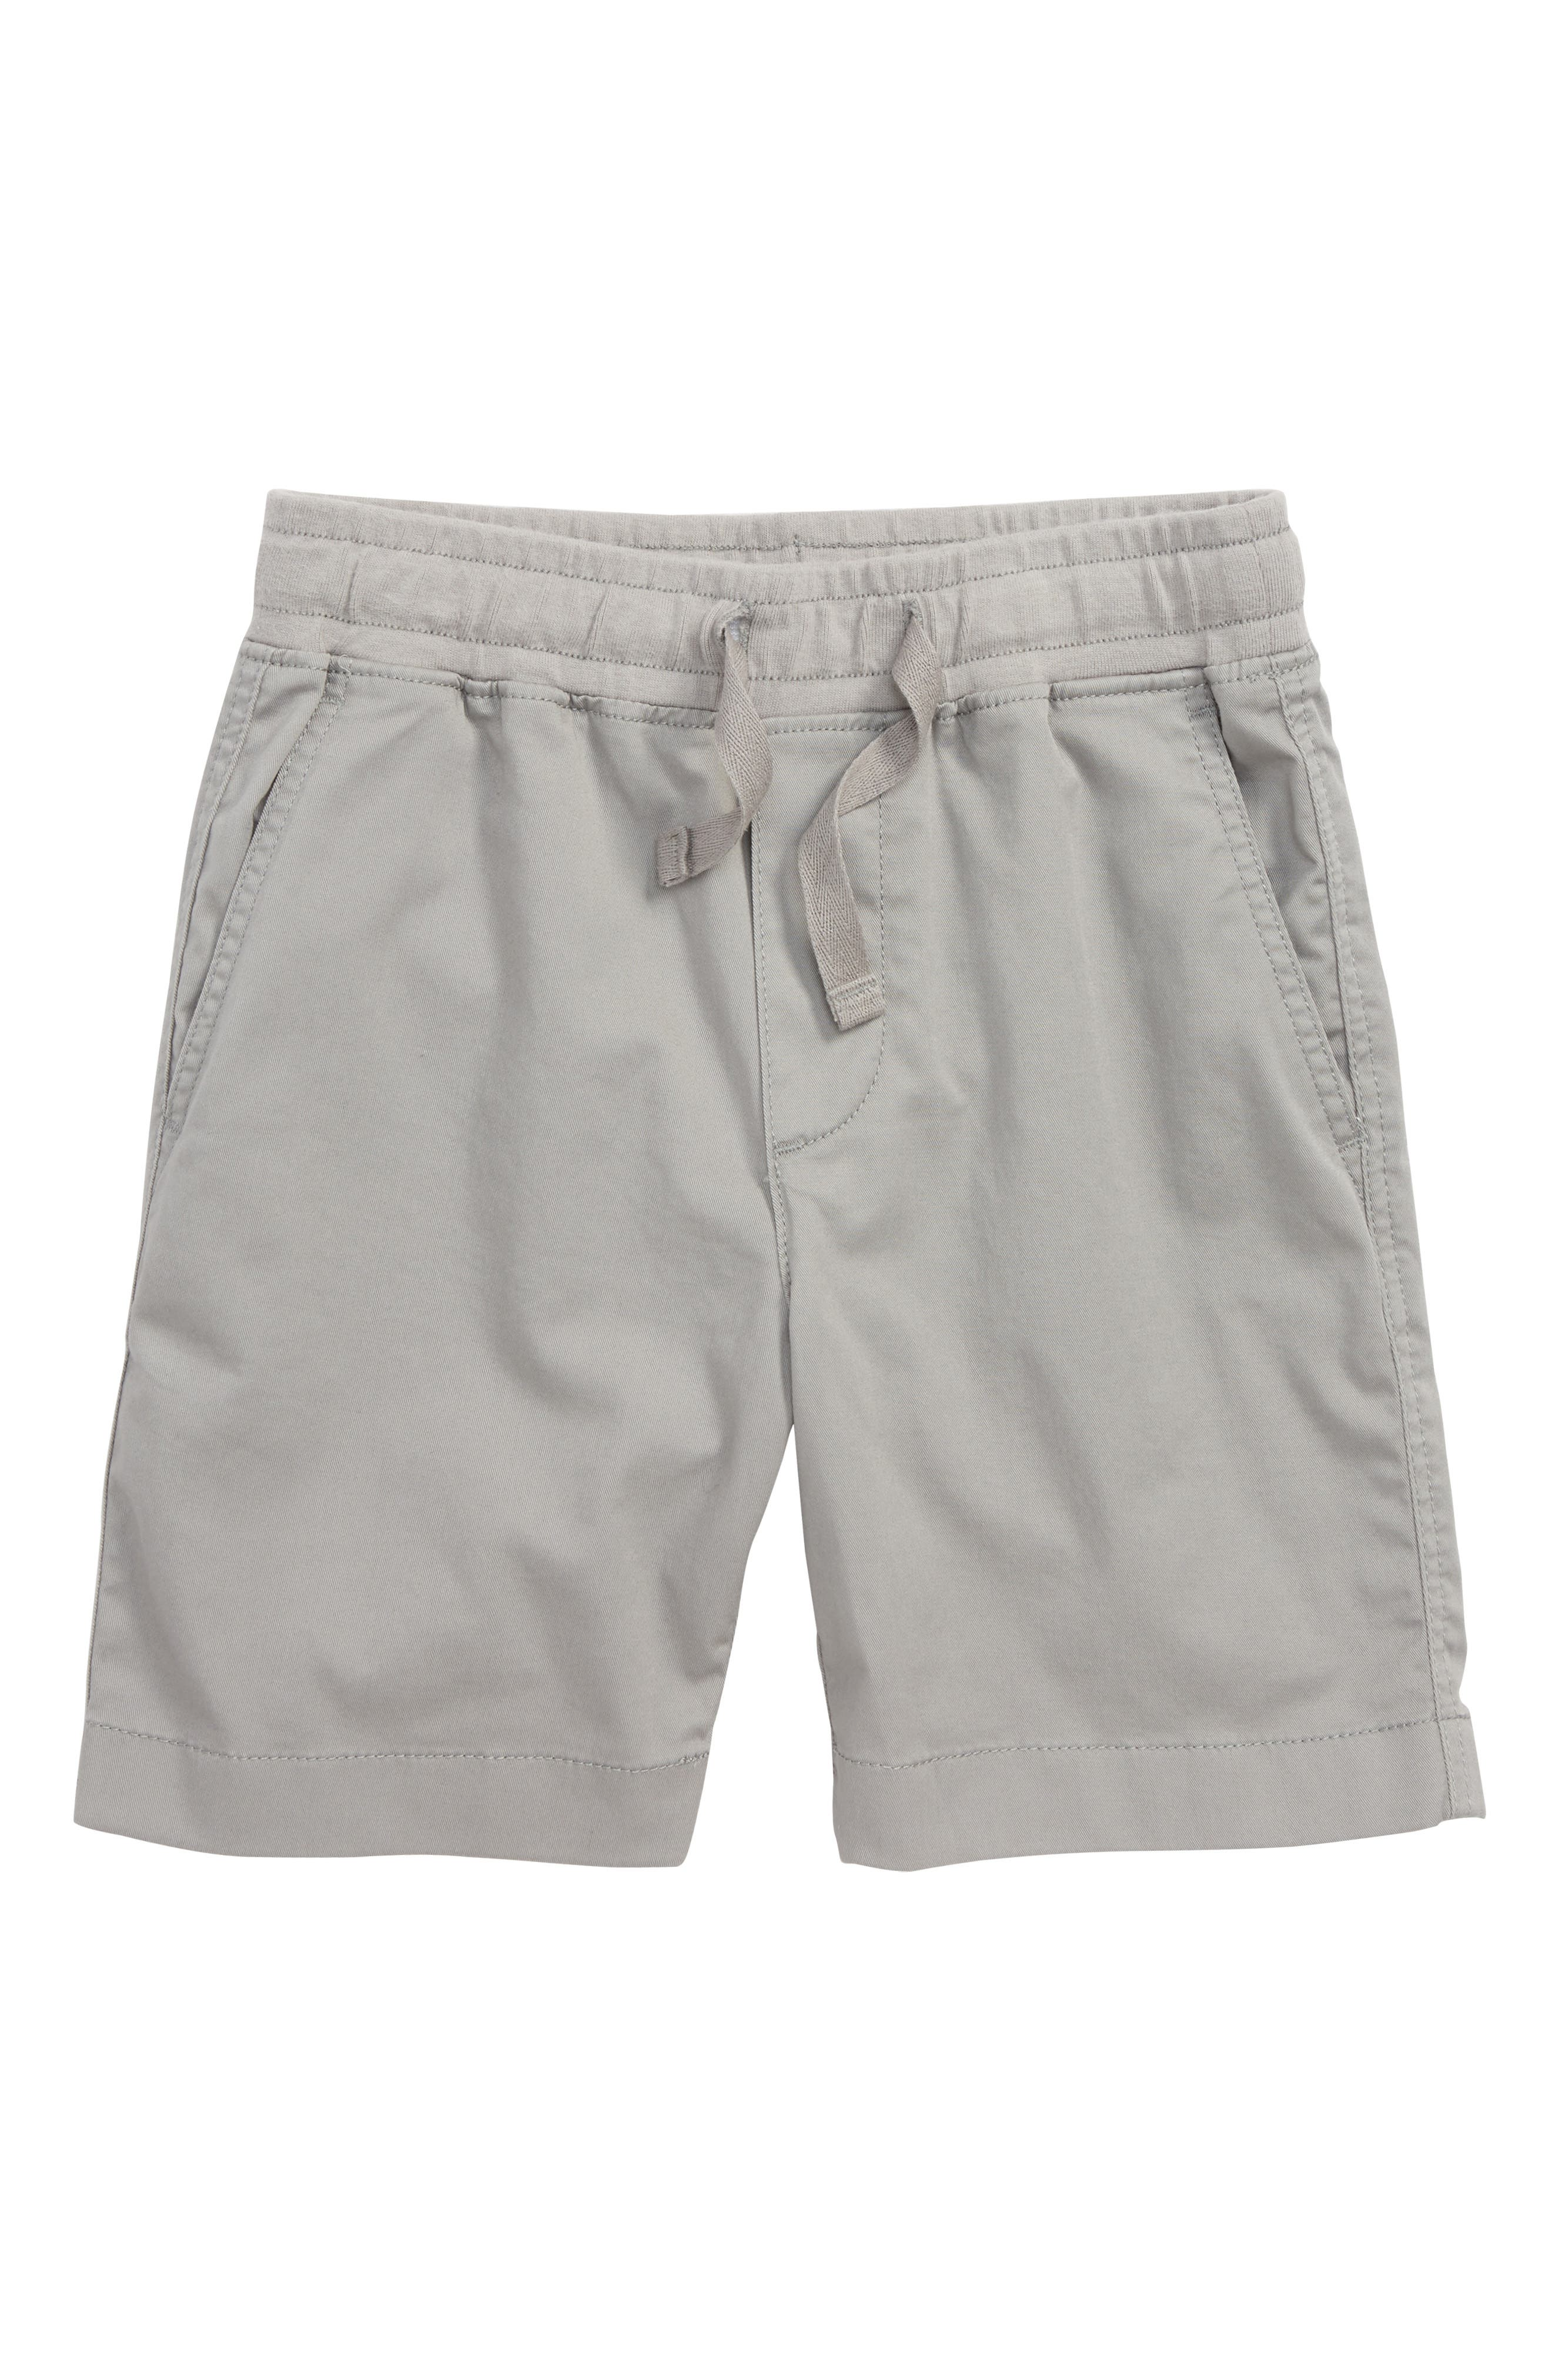 Stretch Pull-On Shorts,                             Main thumbnail 1, color,                             020